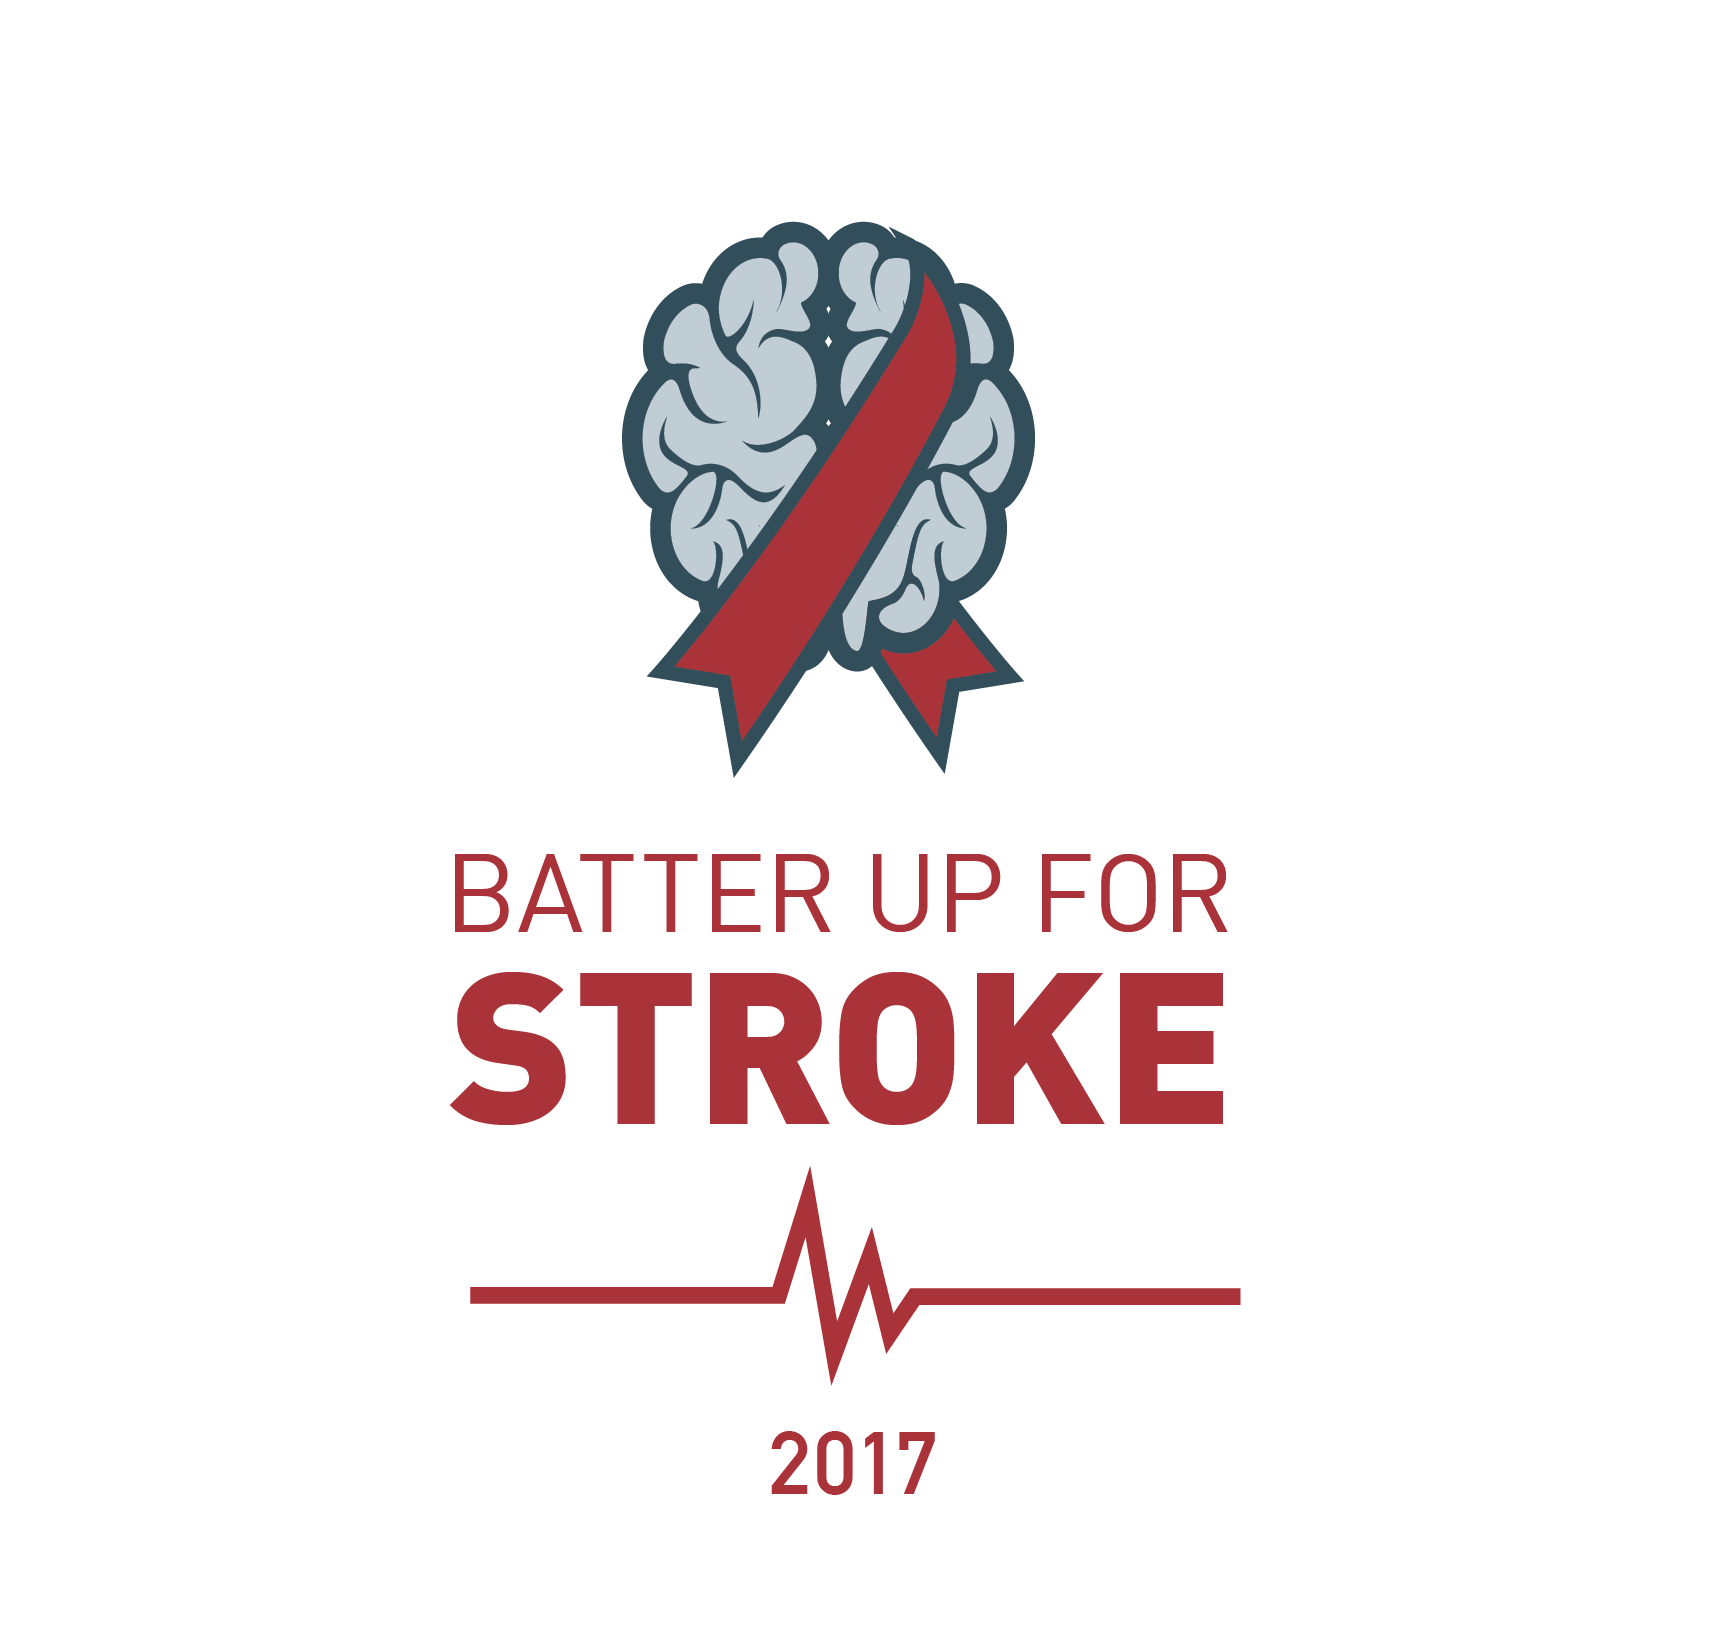 https://www.joeniekrofoundation.com/ways-to-give/brain-aneurysm/attachment/batter-up-for-stroke_logo_final_transparent-02/